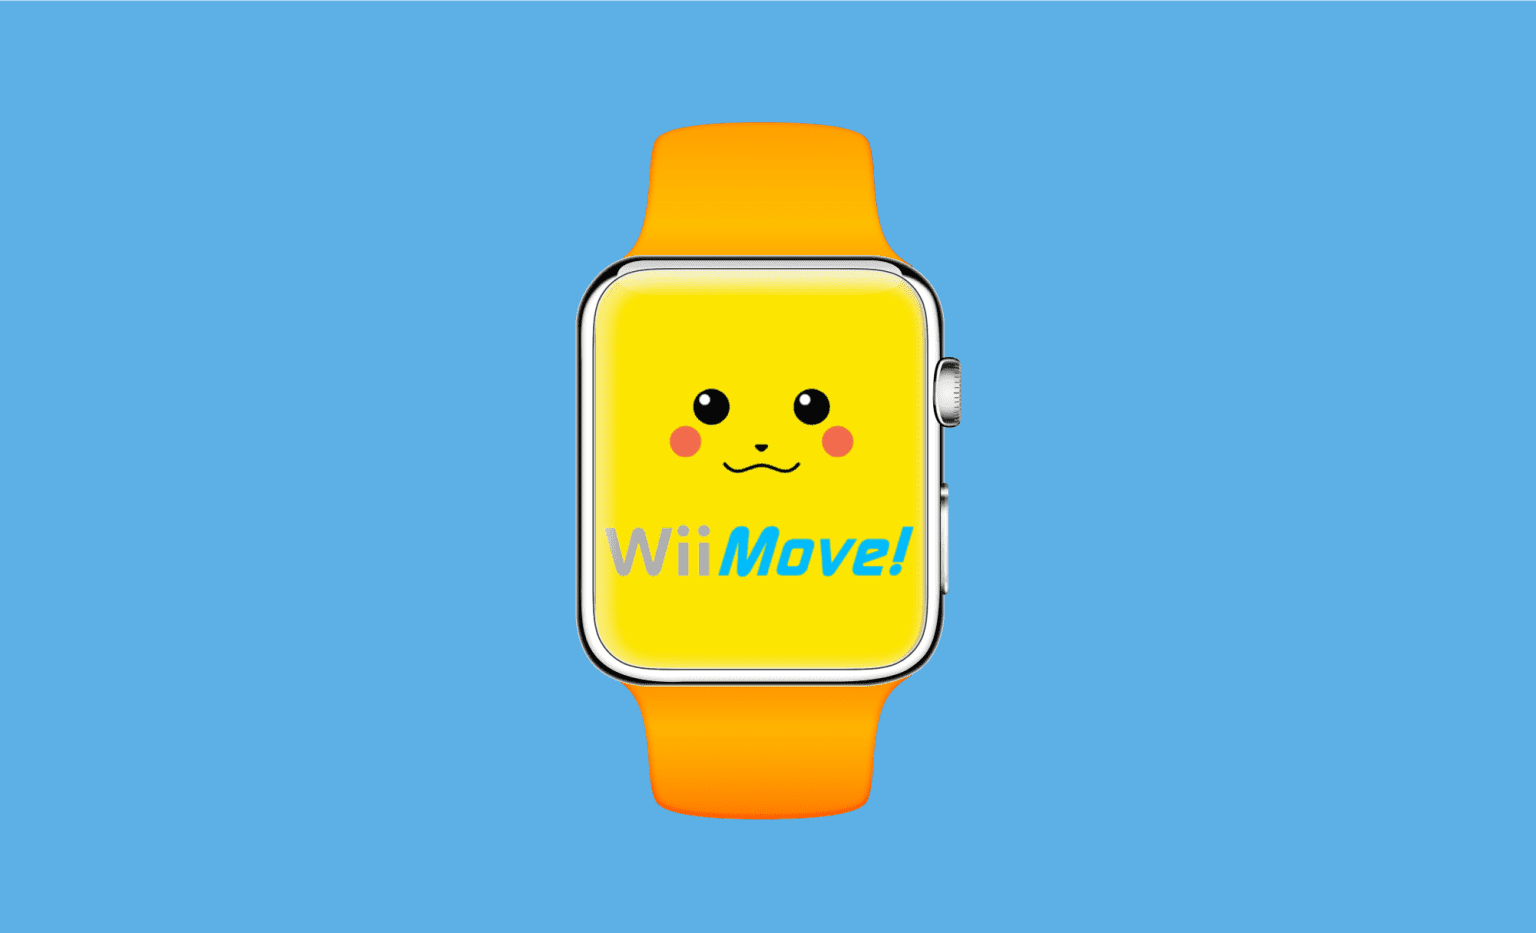 Apple Watch Design: WiiMOVE!